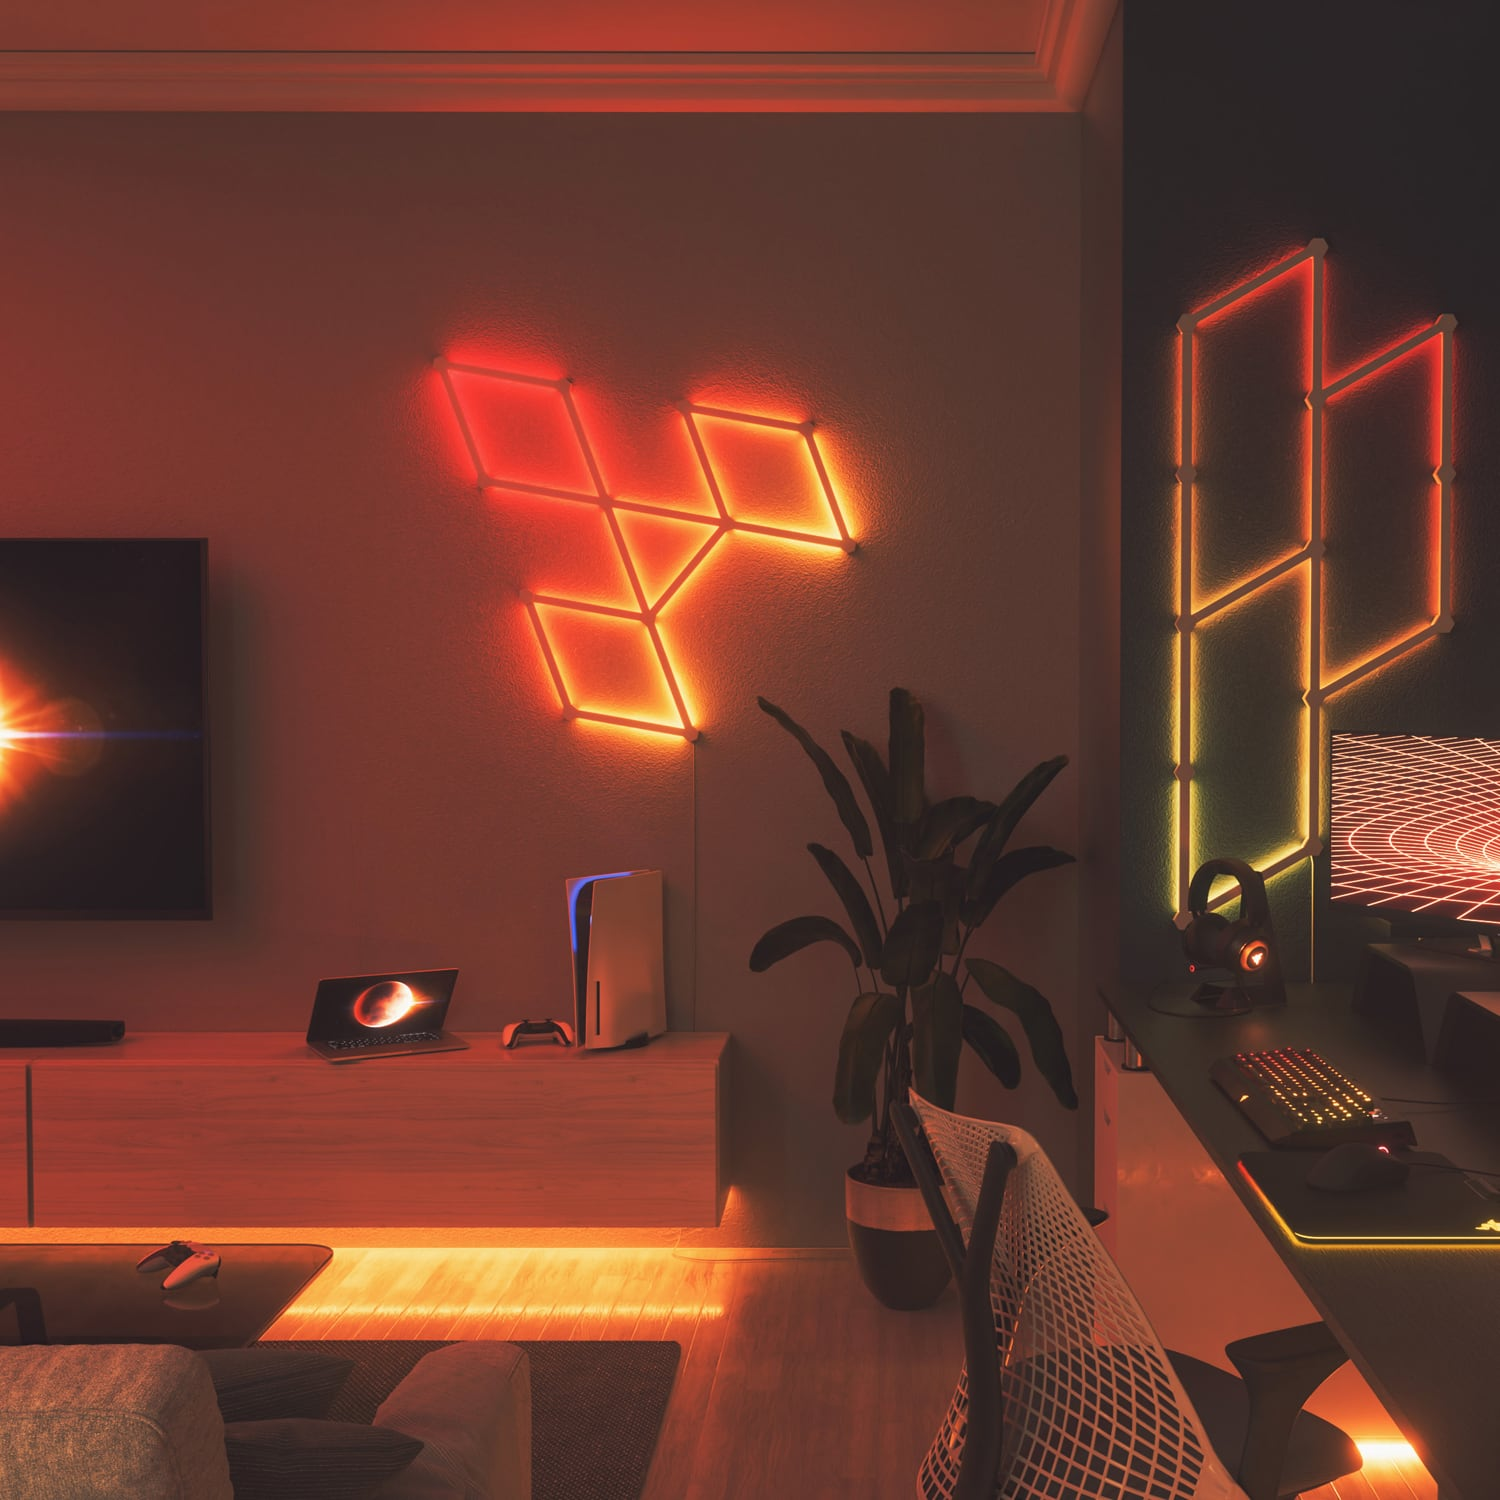 Lines-15x-Gaming room-1500x1500